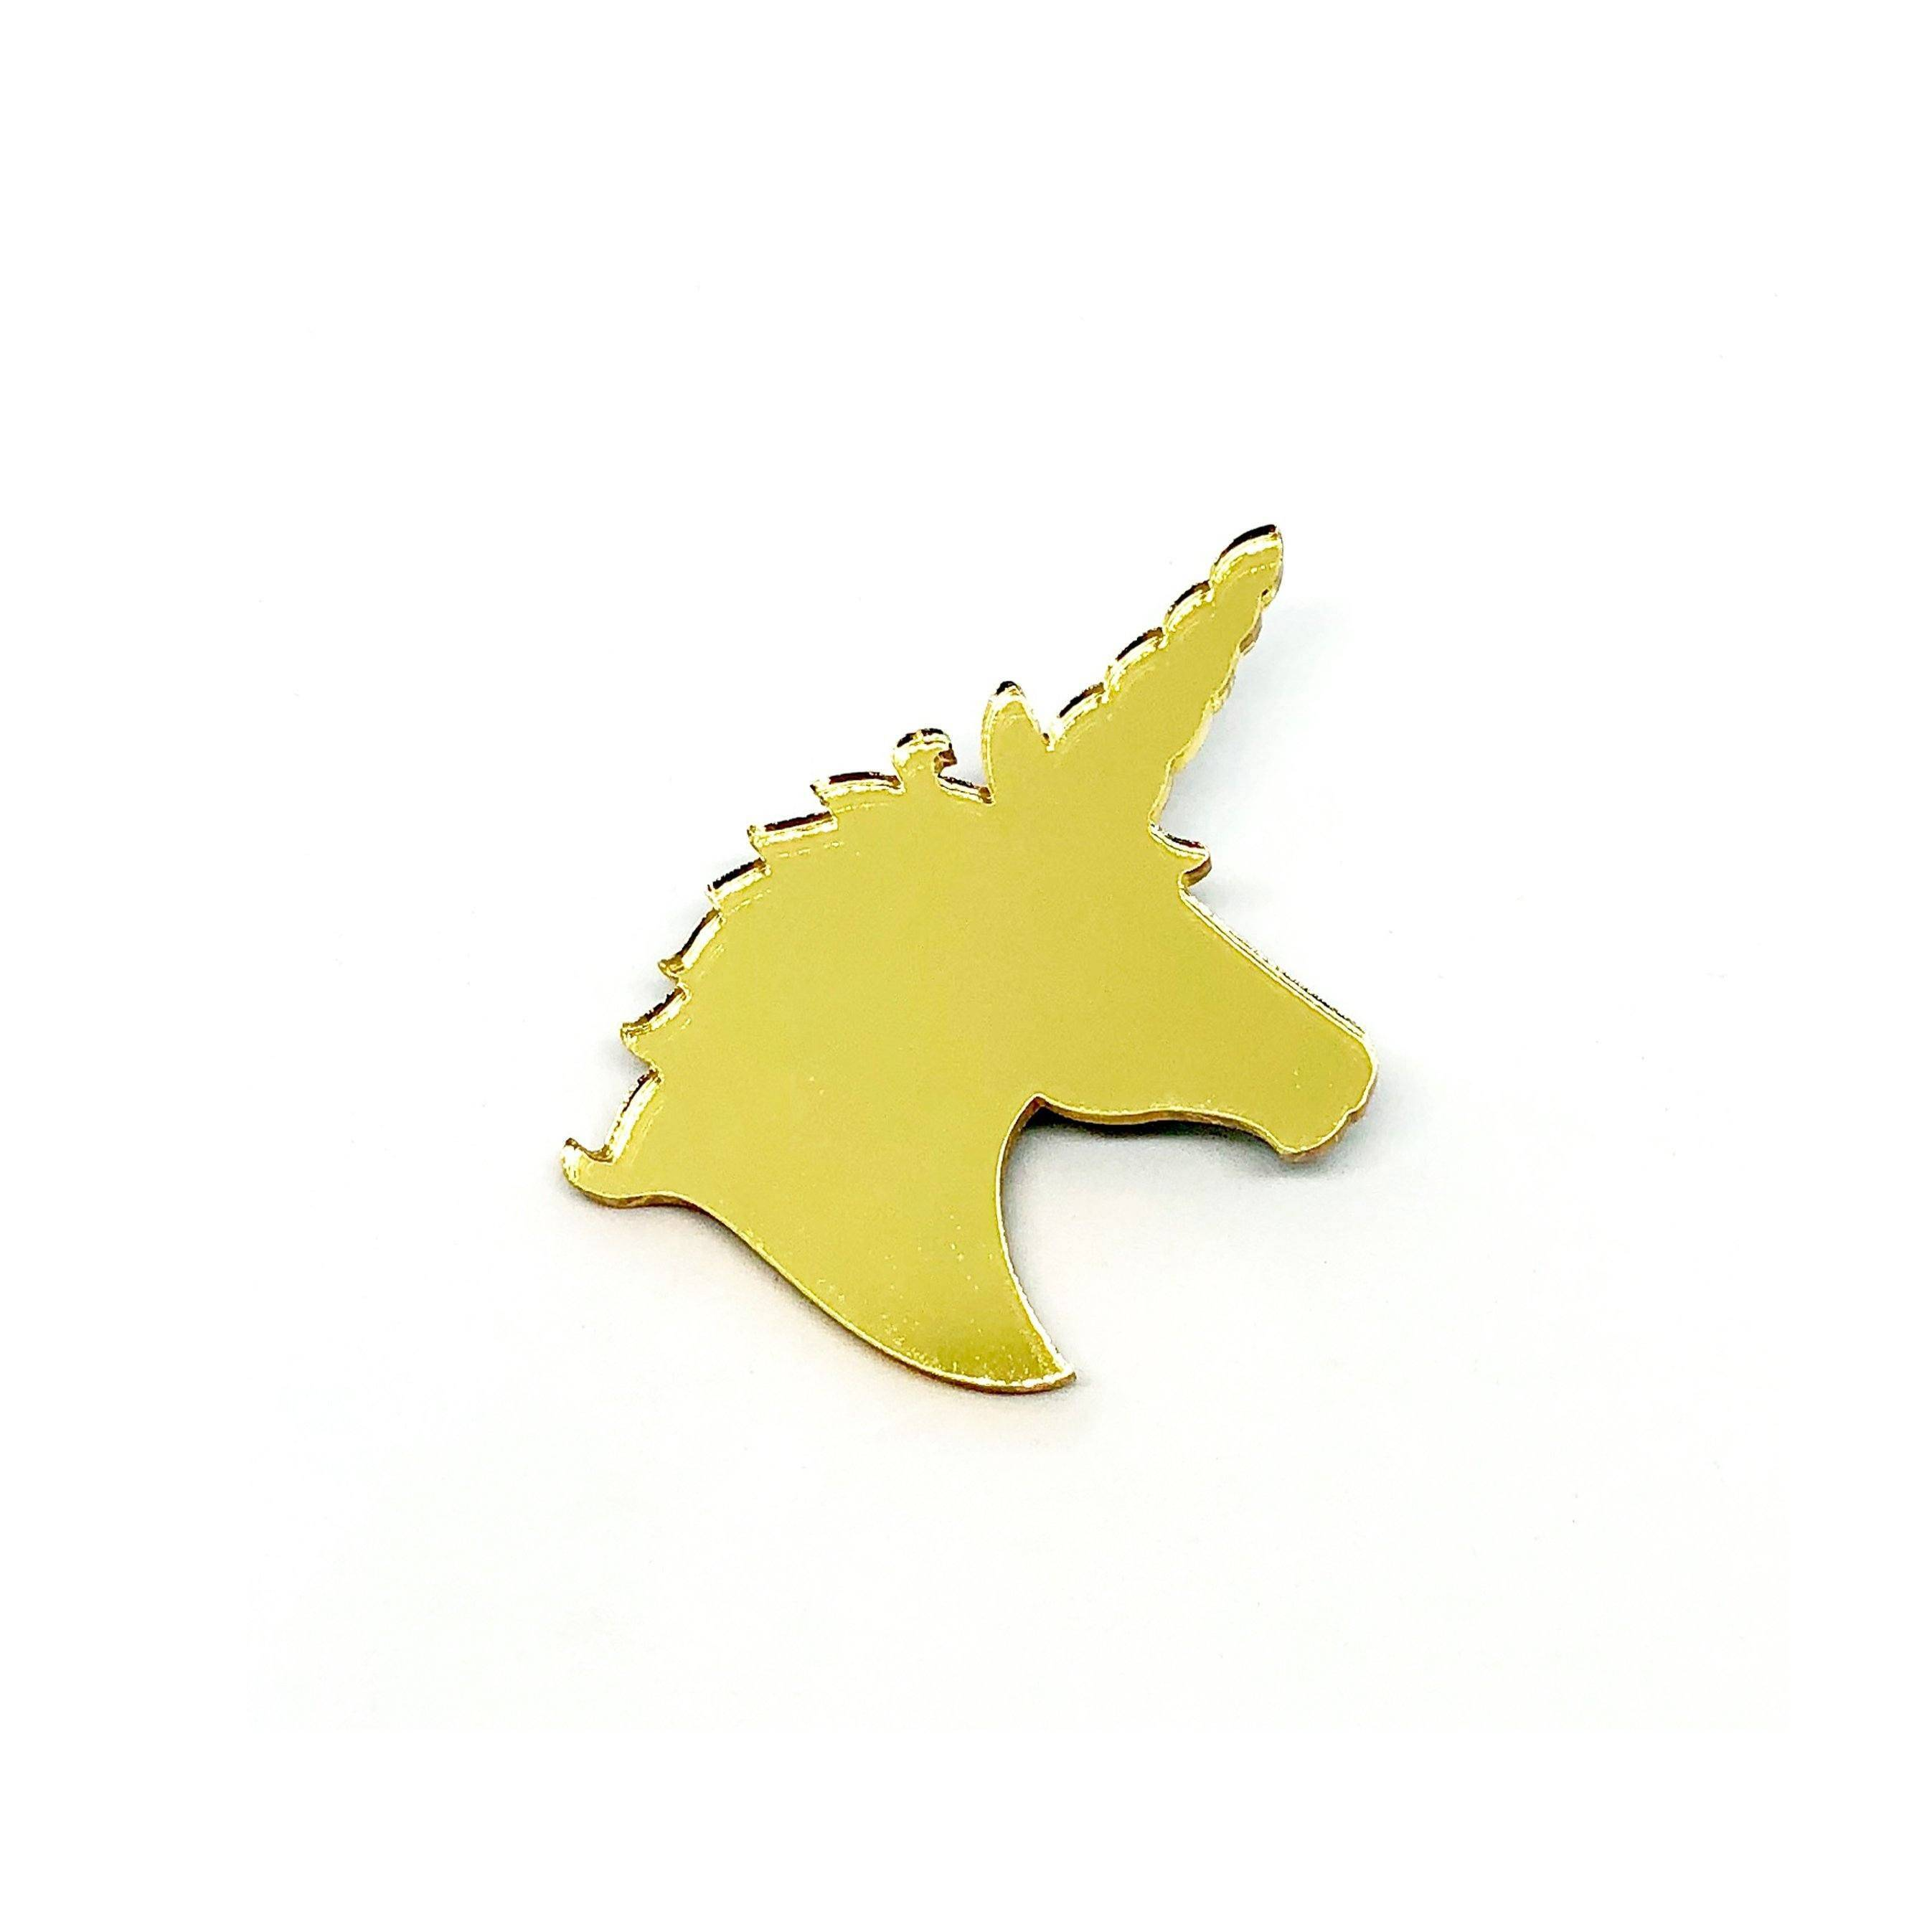 Unicorn Gold Mirror Laser Cut Acrylic Brooch Pin - Brooches - Paperdaise Accessories - Naiise